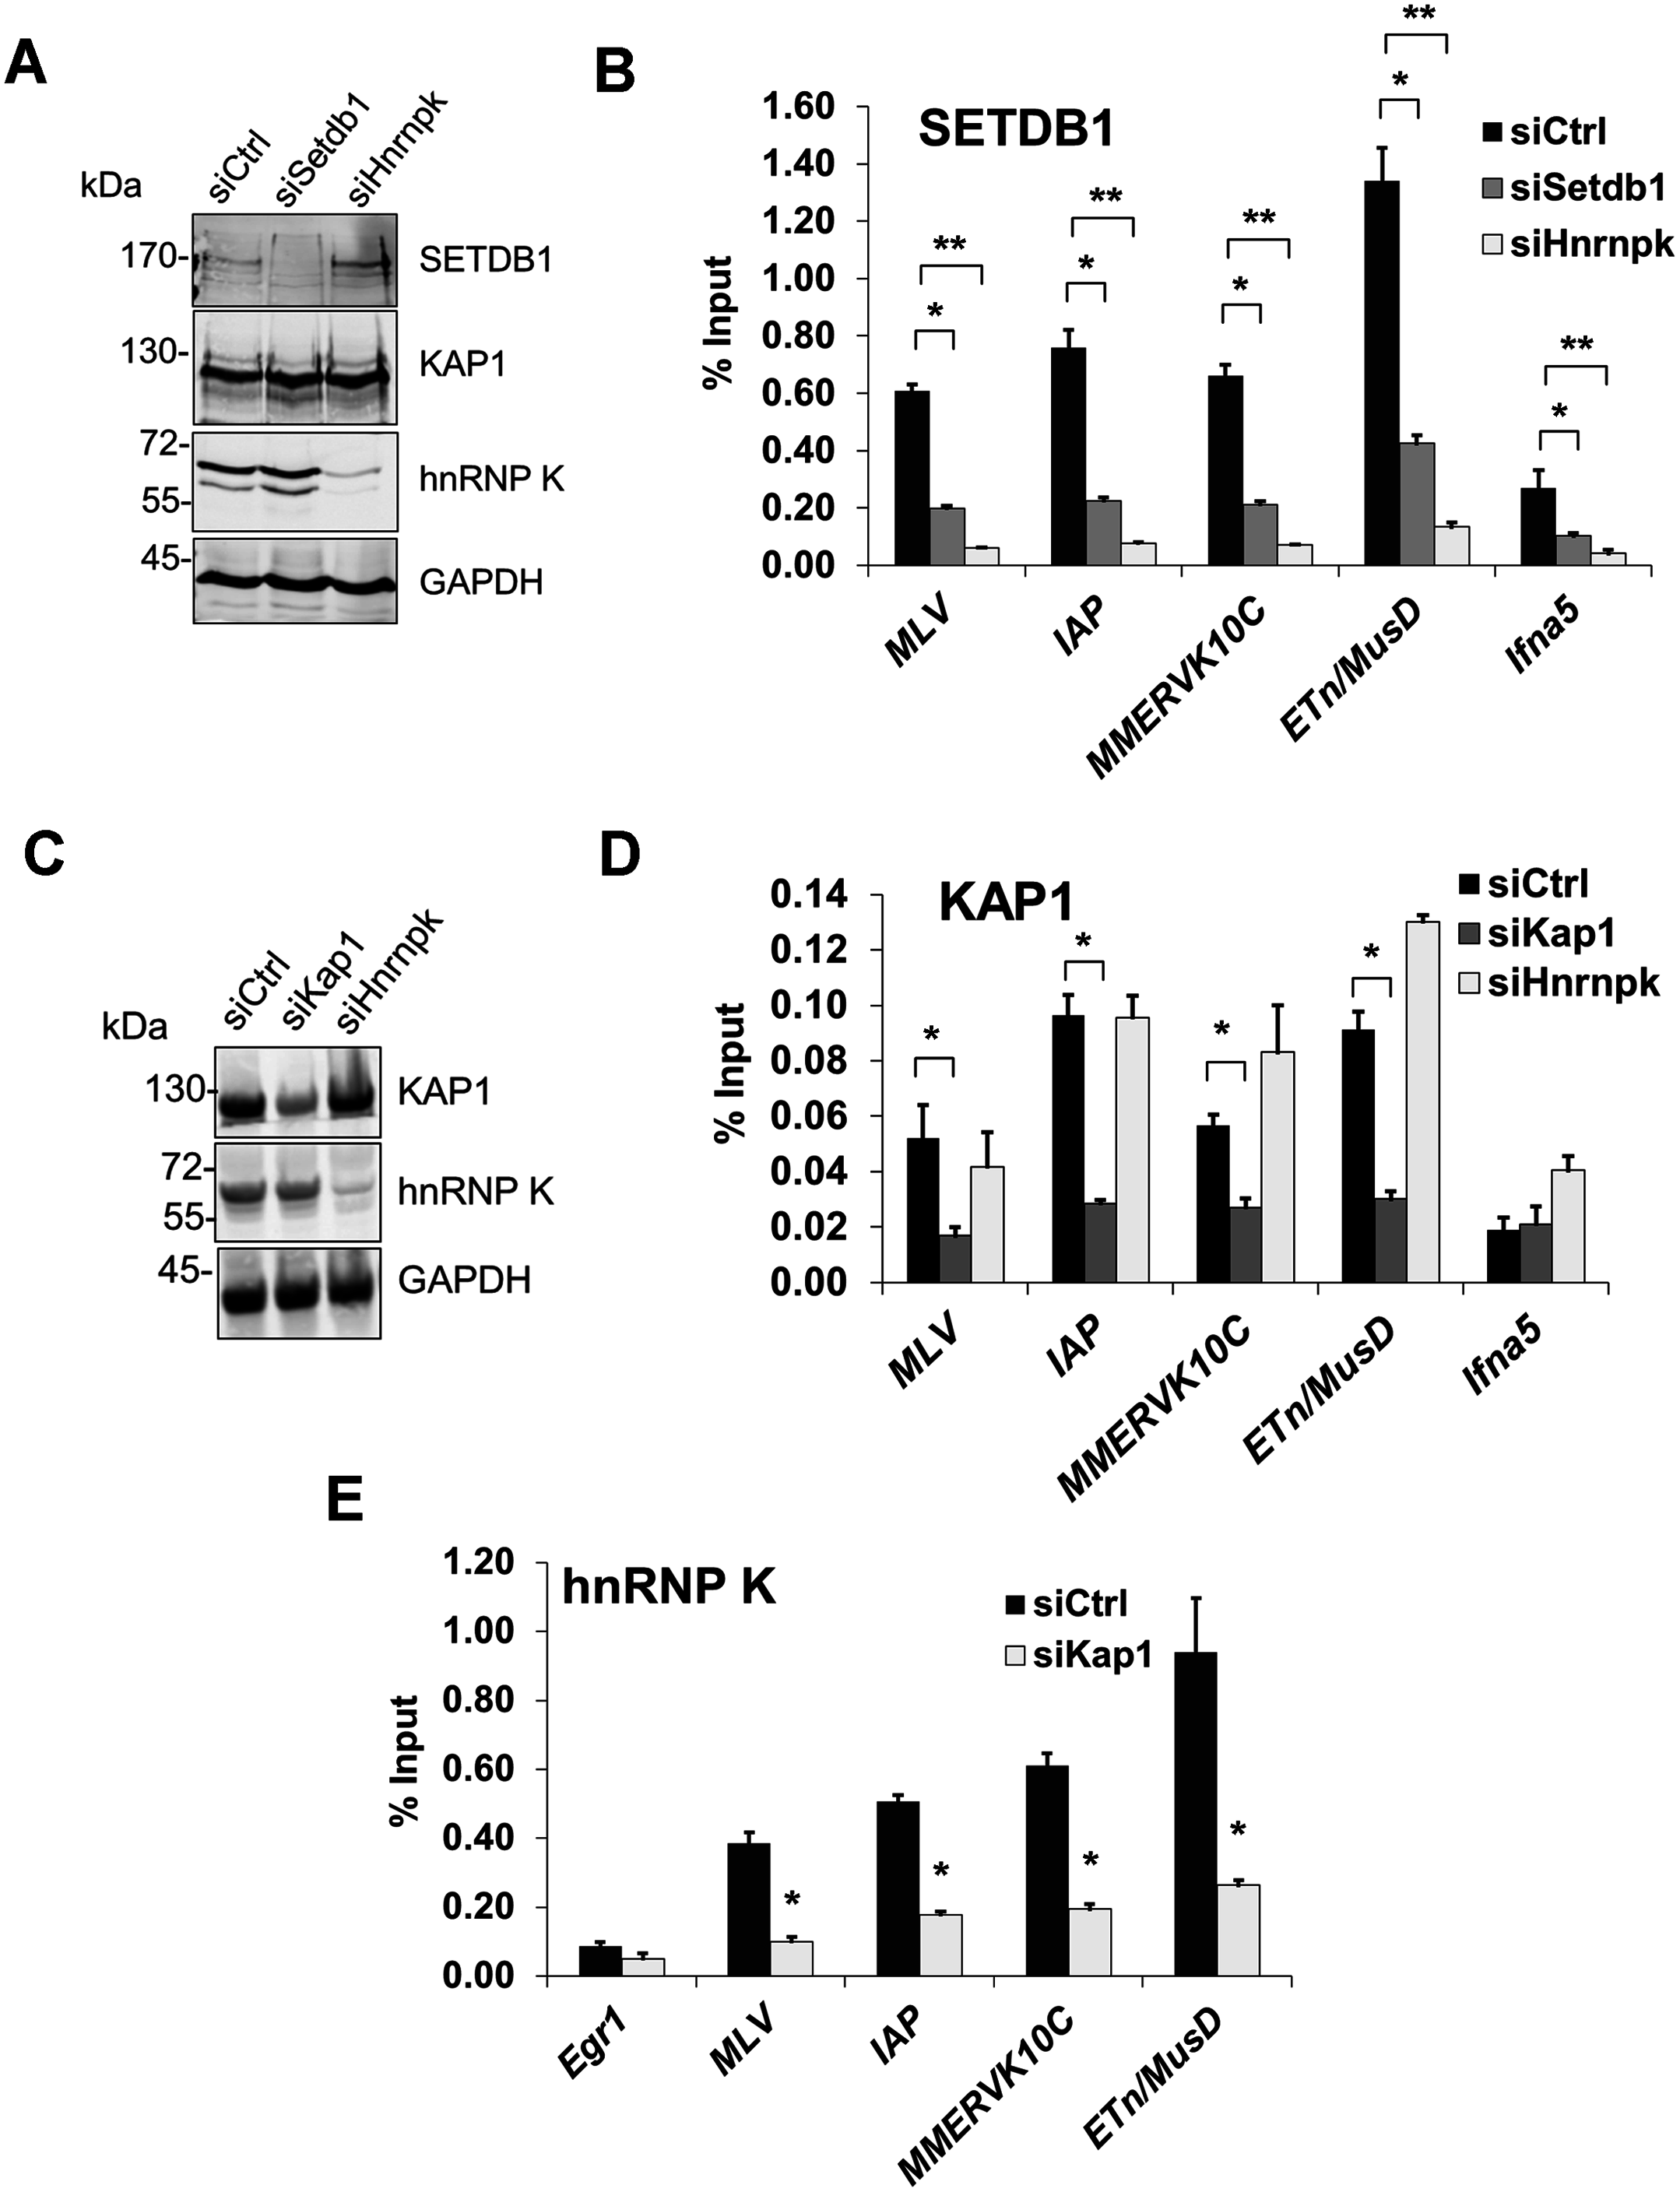 hnRNP K is required for SETDB1 but not KAP1 recruitment to ERVs.